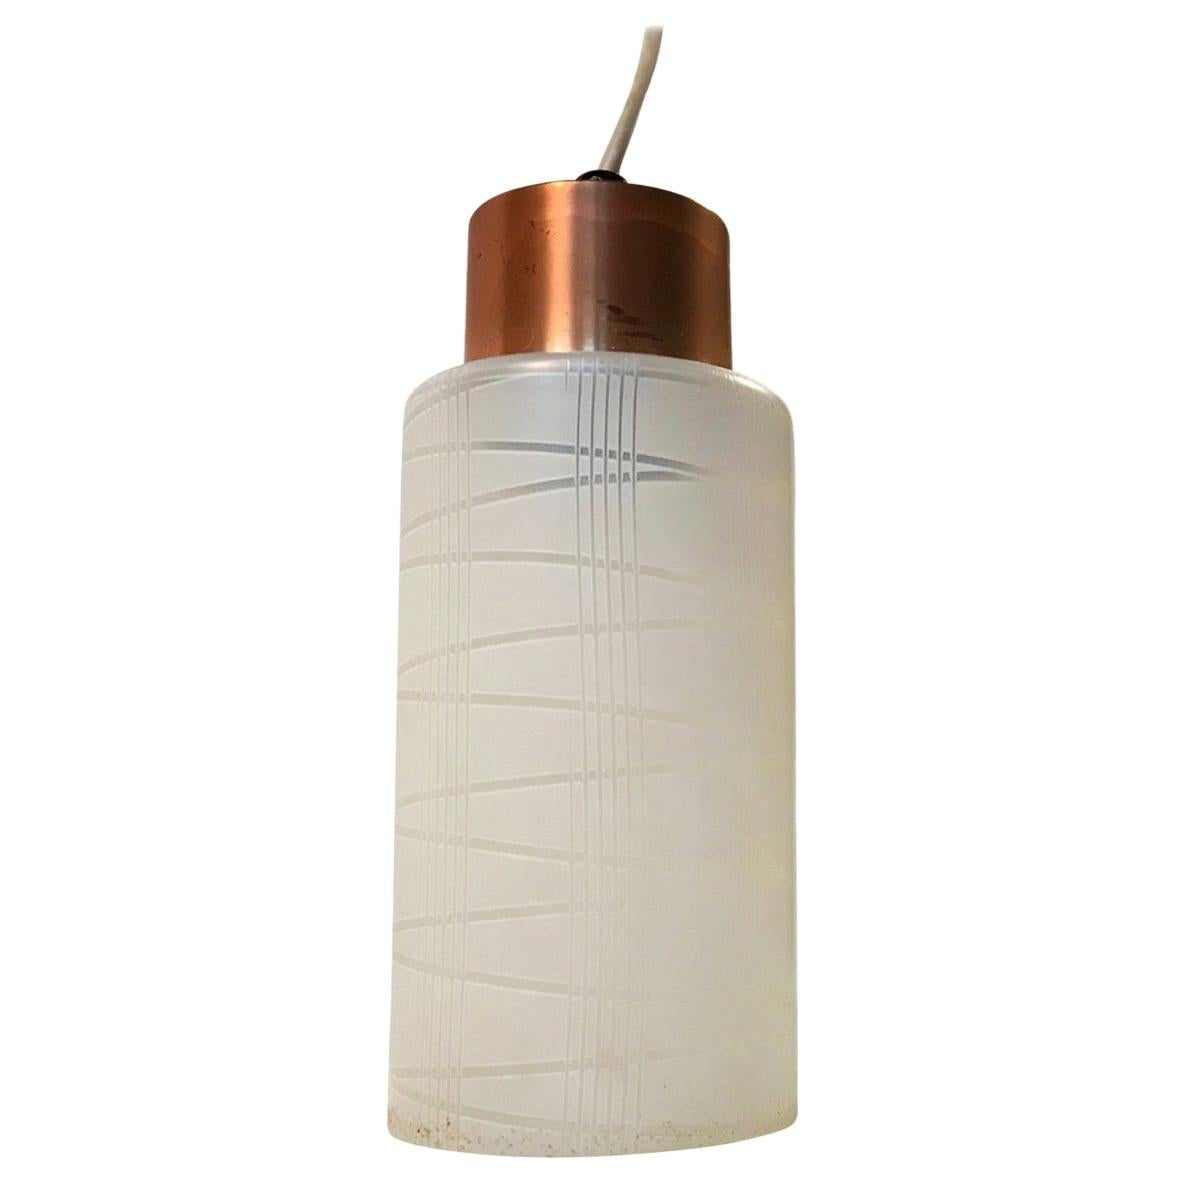 Small Danish Functionalist Glass and Copper Pendant from Voss, 1950s